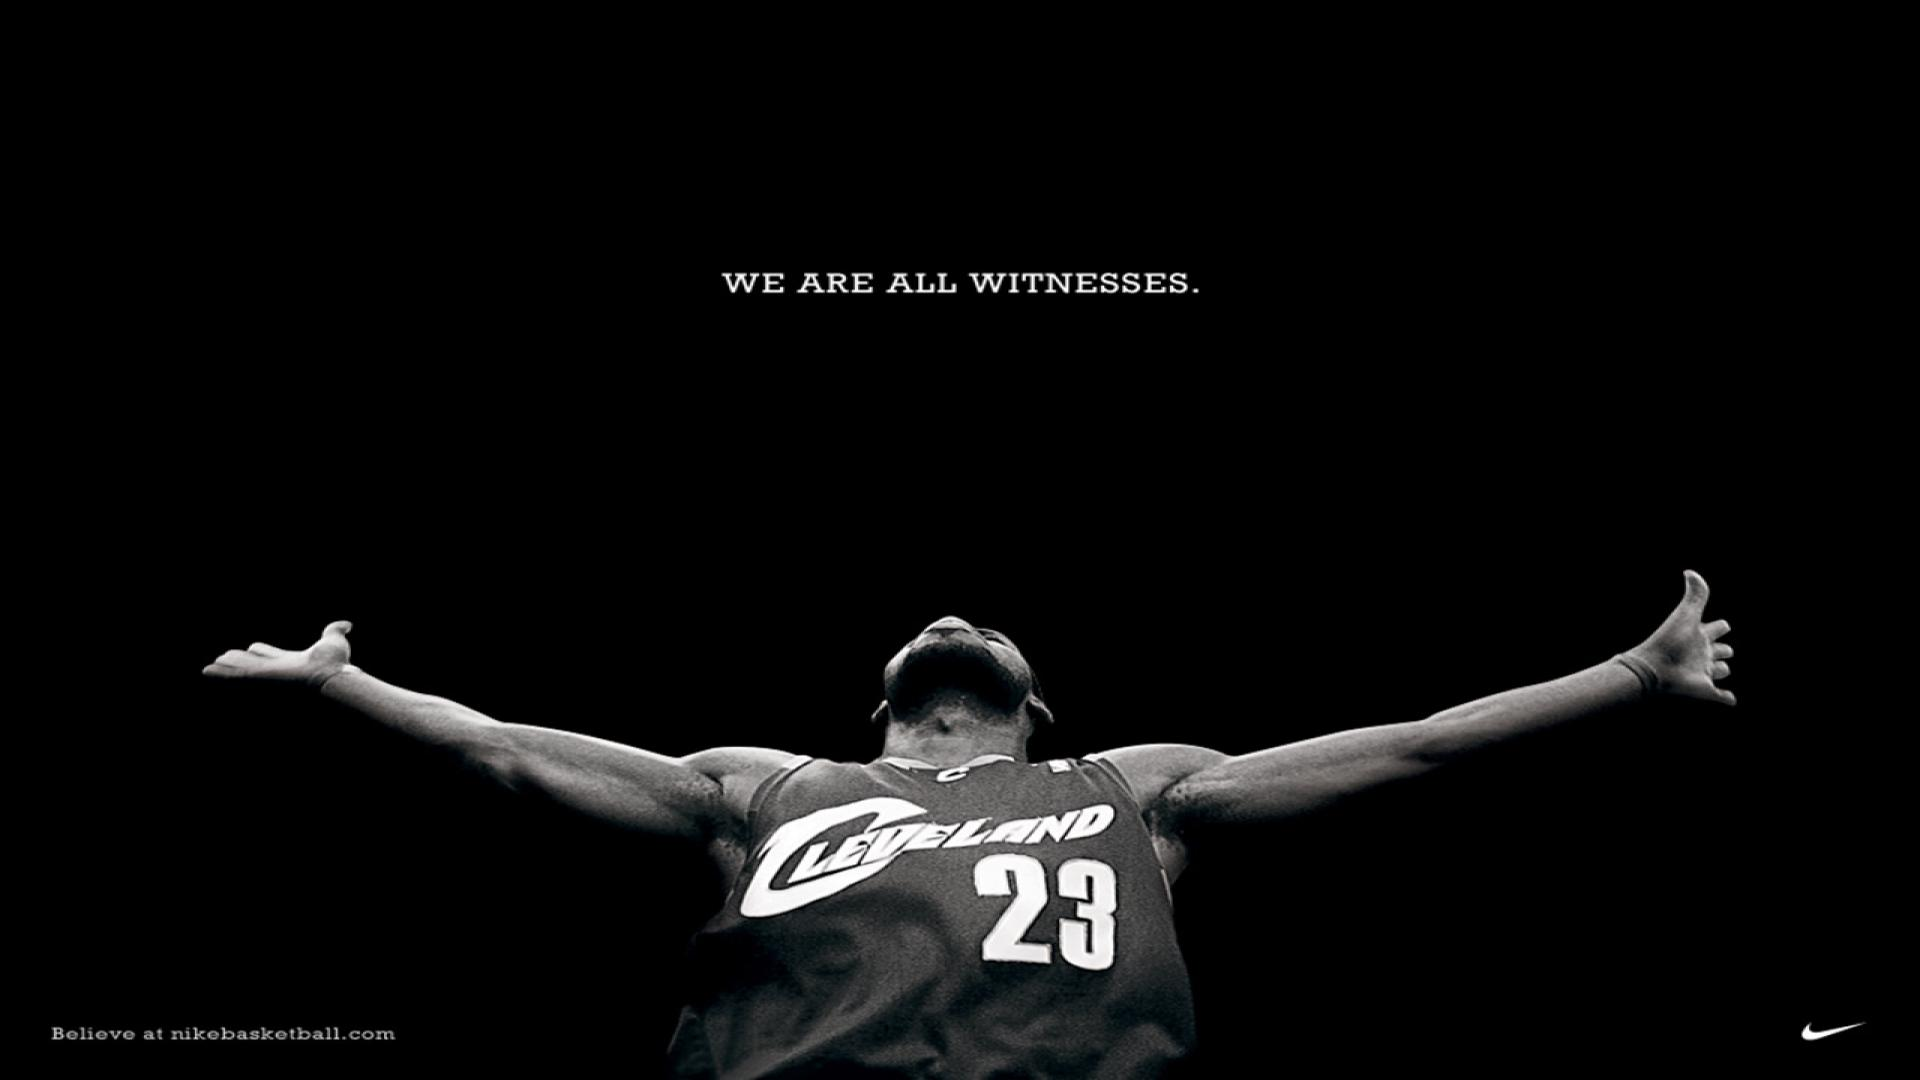 Lebron James Nike Wallpapers - Wallpaper Cave